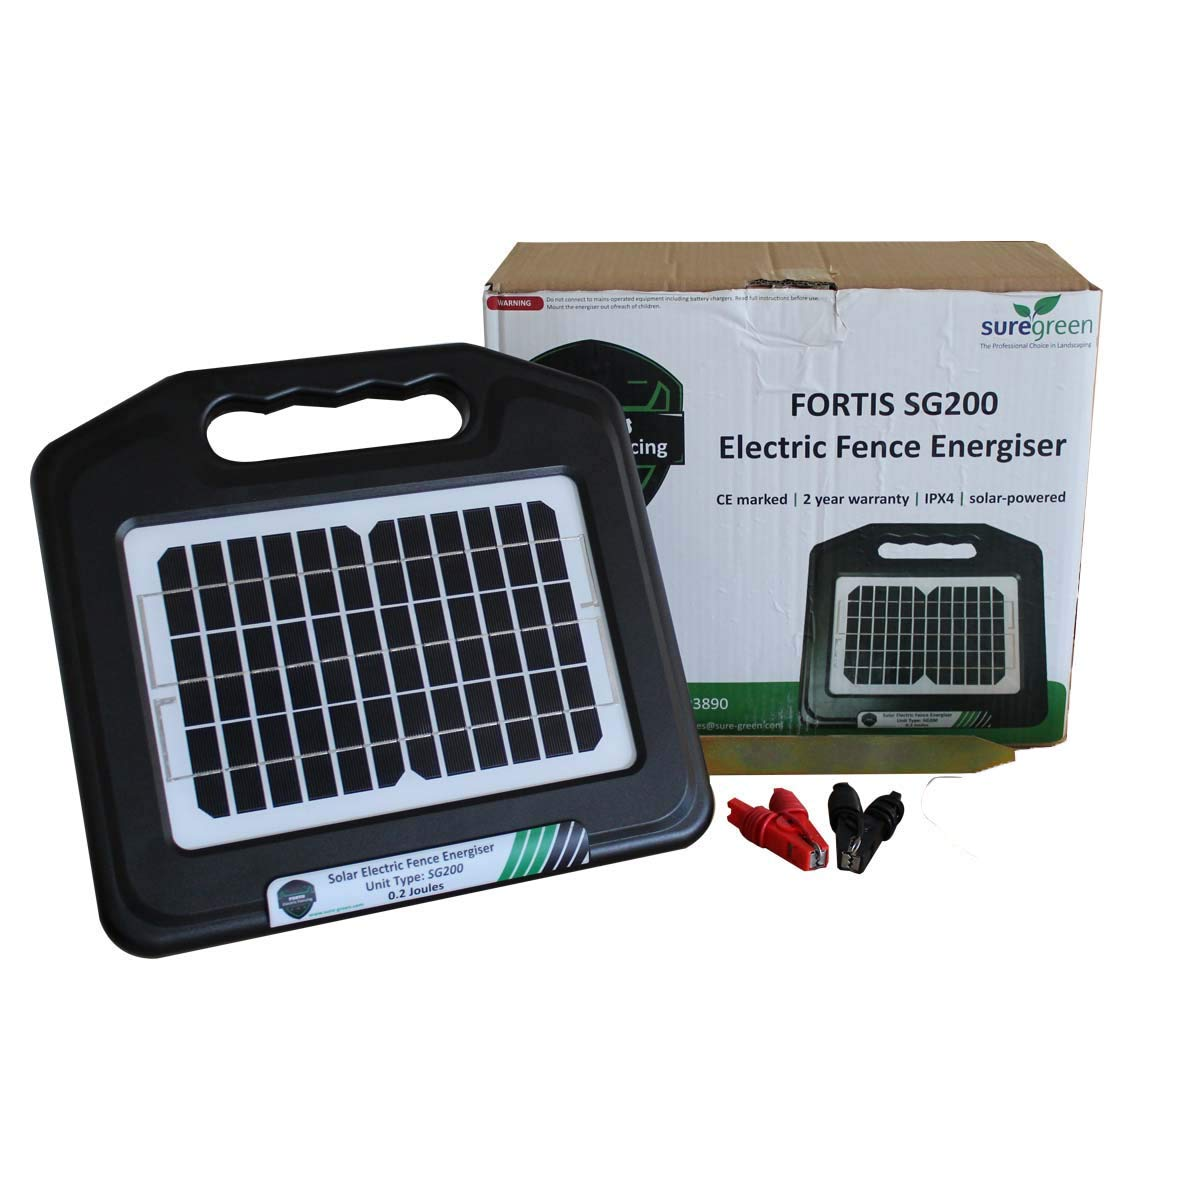 Suregreen Electric Fence Energiser Solar Powered 0.2J Power Unit with Rechargeable Battery FORTIS Energizer – CE and ROHS approved with 24 Month Warranty